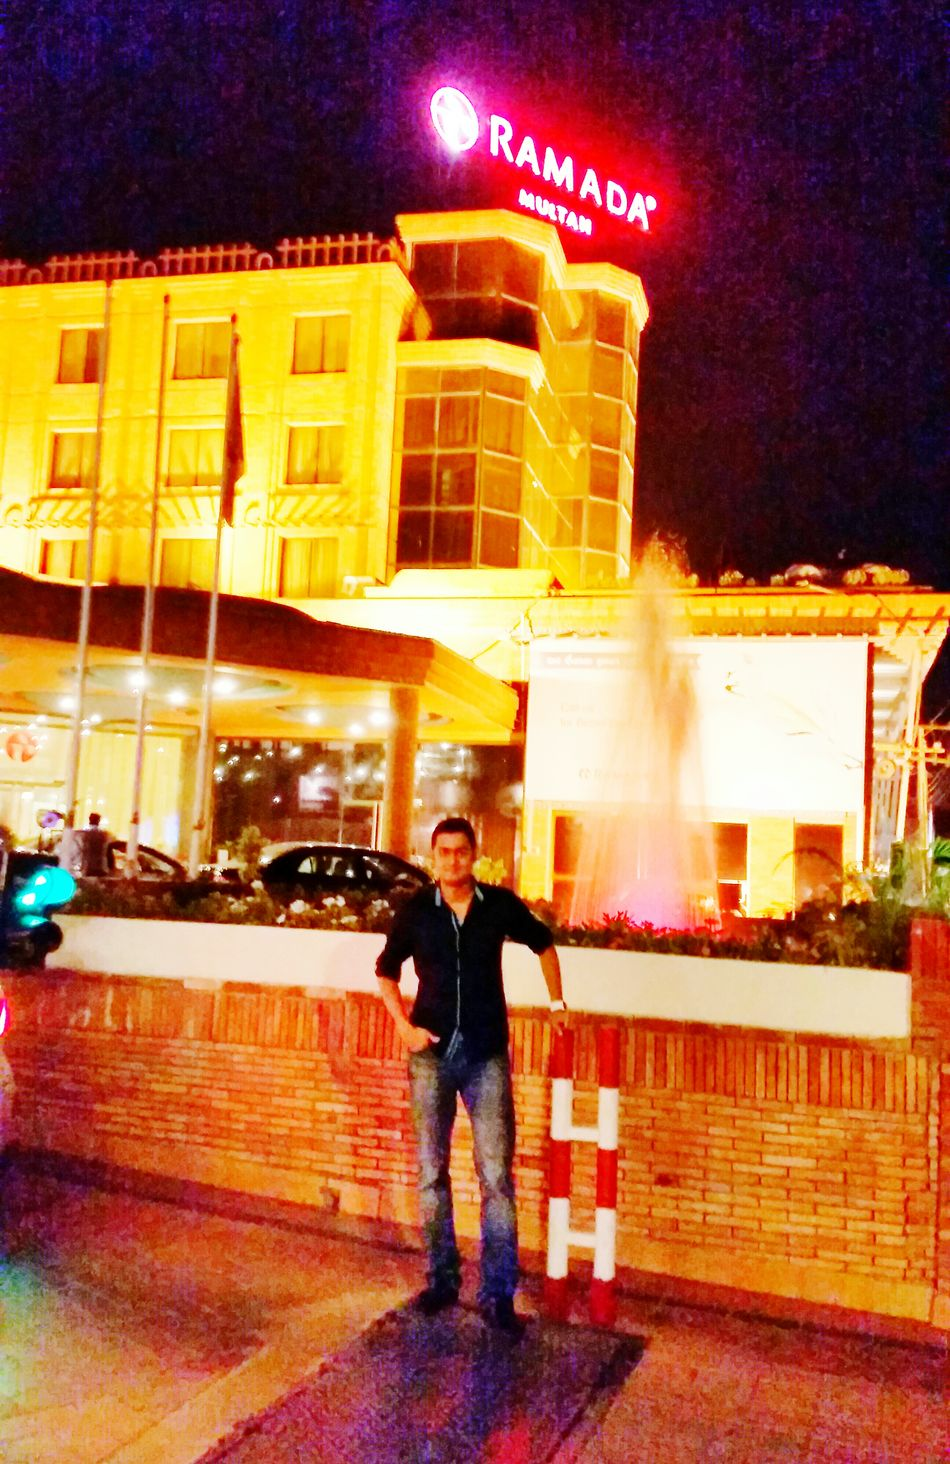 Ramada Hotel Boy Crazy Hotel Stayin' Classy That's Me Enjoying Life Hanging Out Taking Photos Relaxing